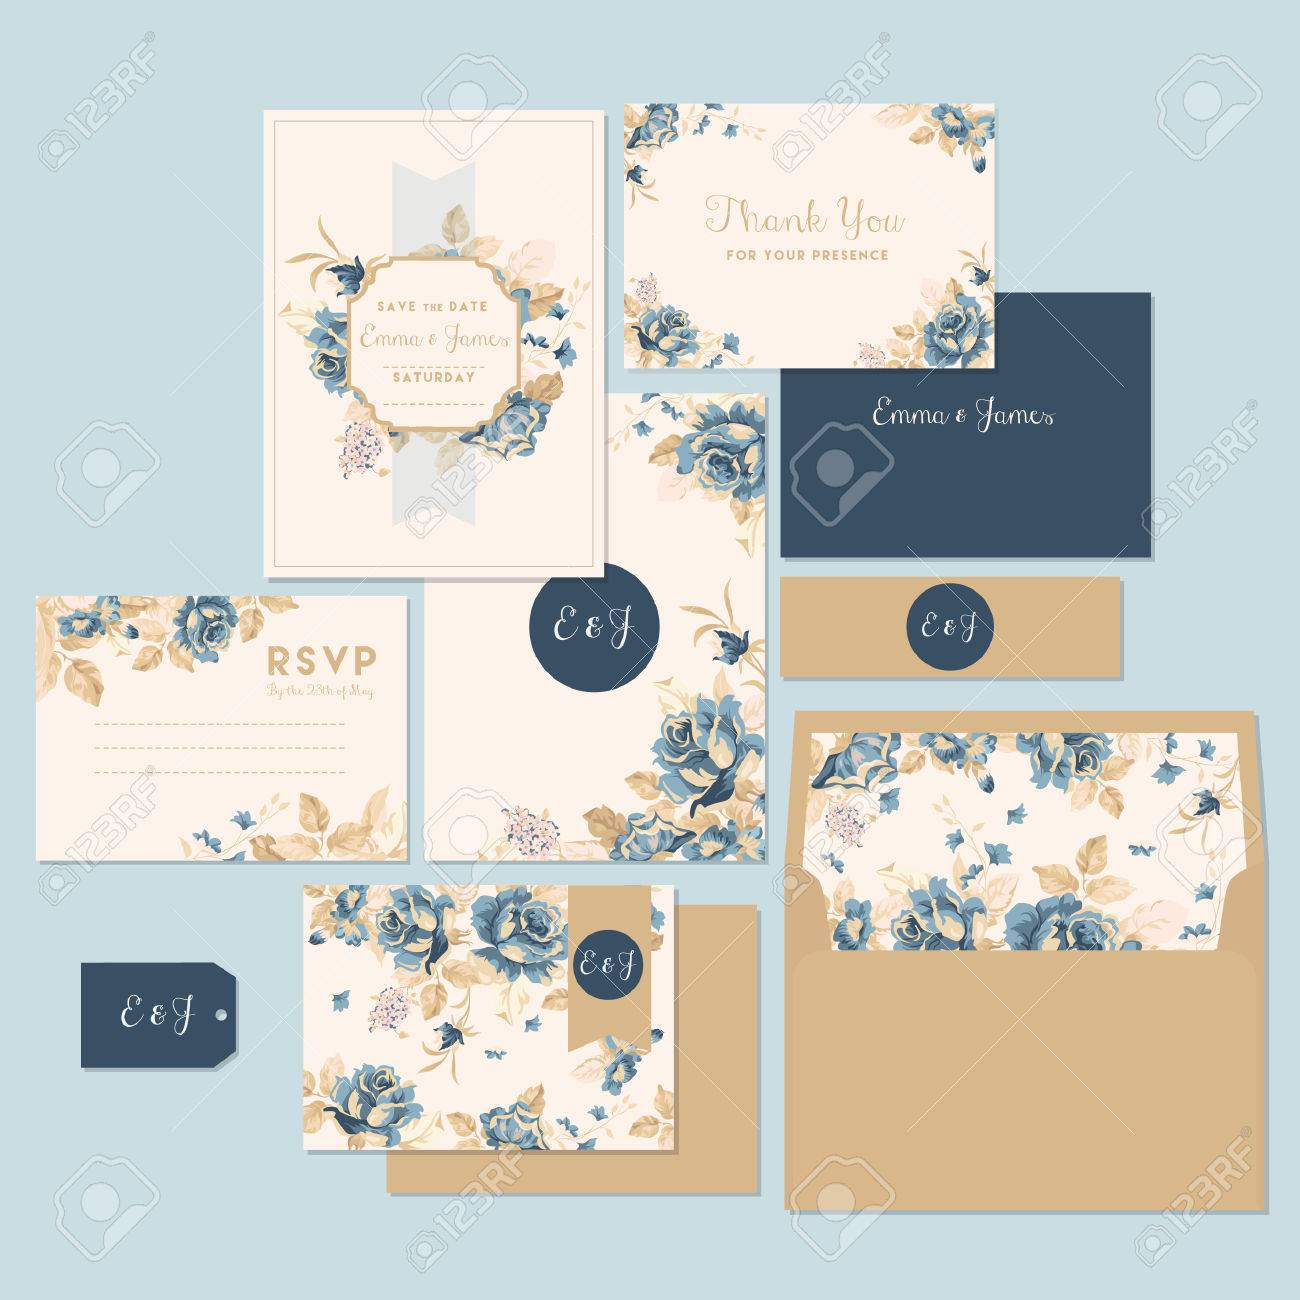 wedding invitation and thank you card - 53822366